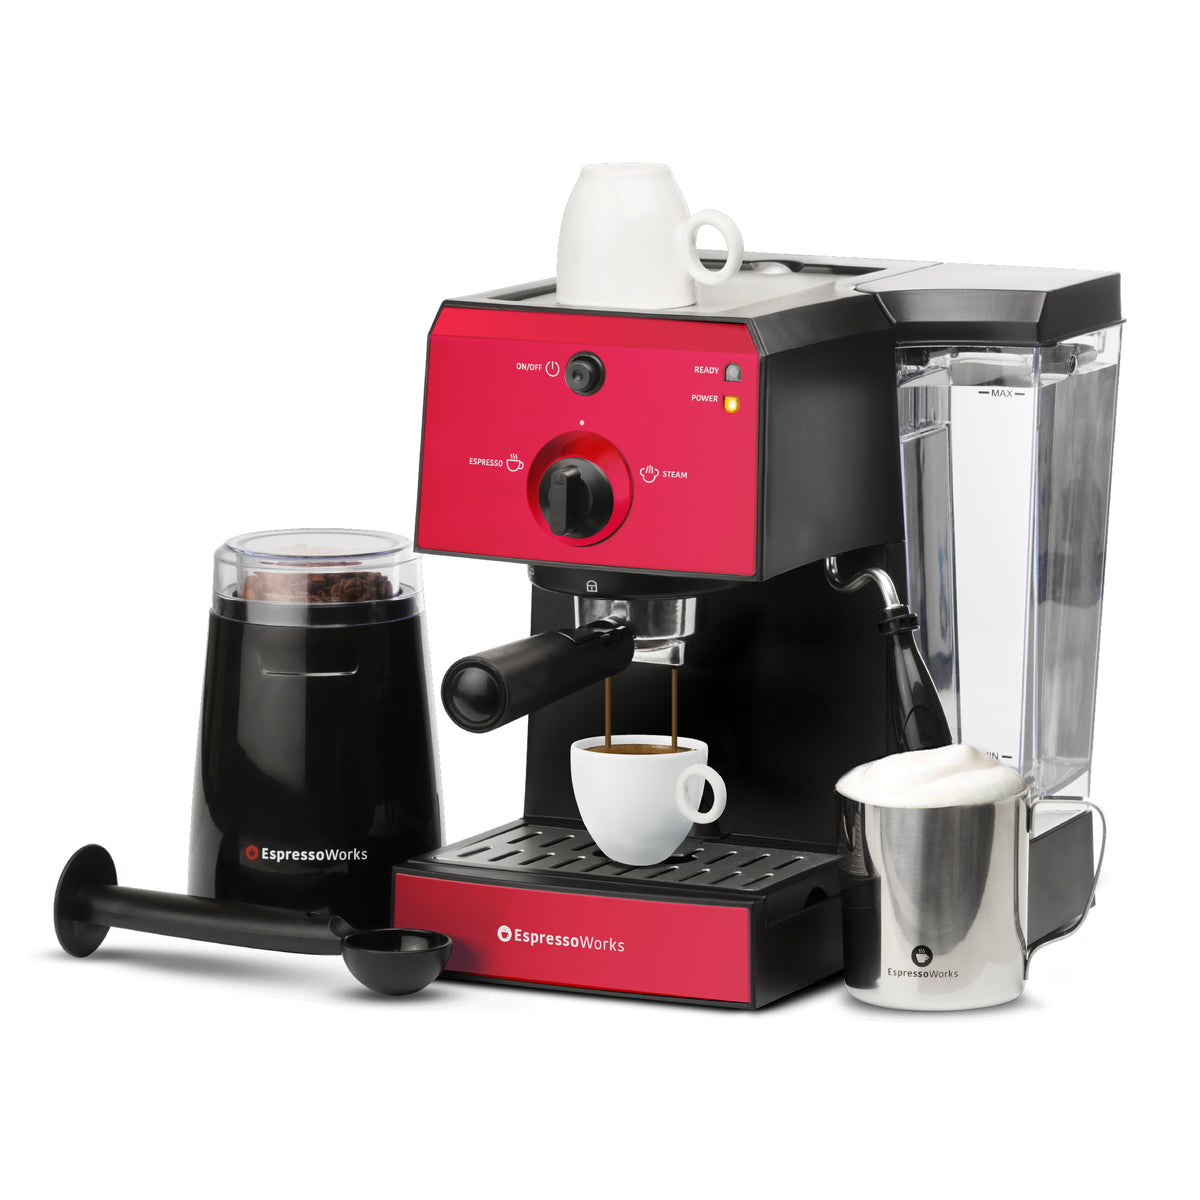 7-piece 15-bar EspressoWorks Espresso Machine Set Red brewing an espresso